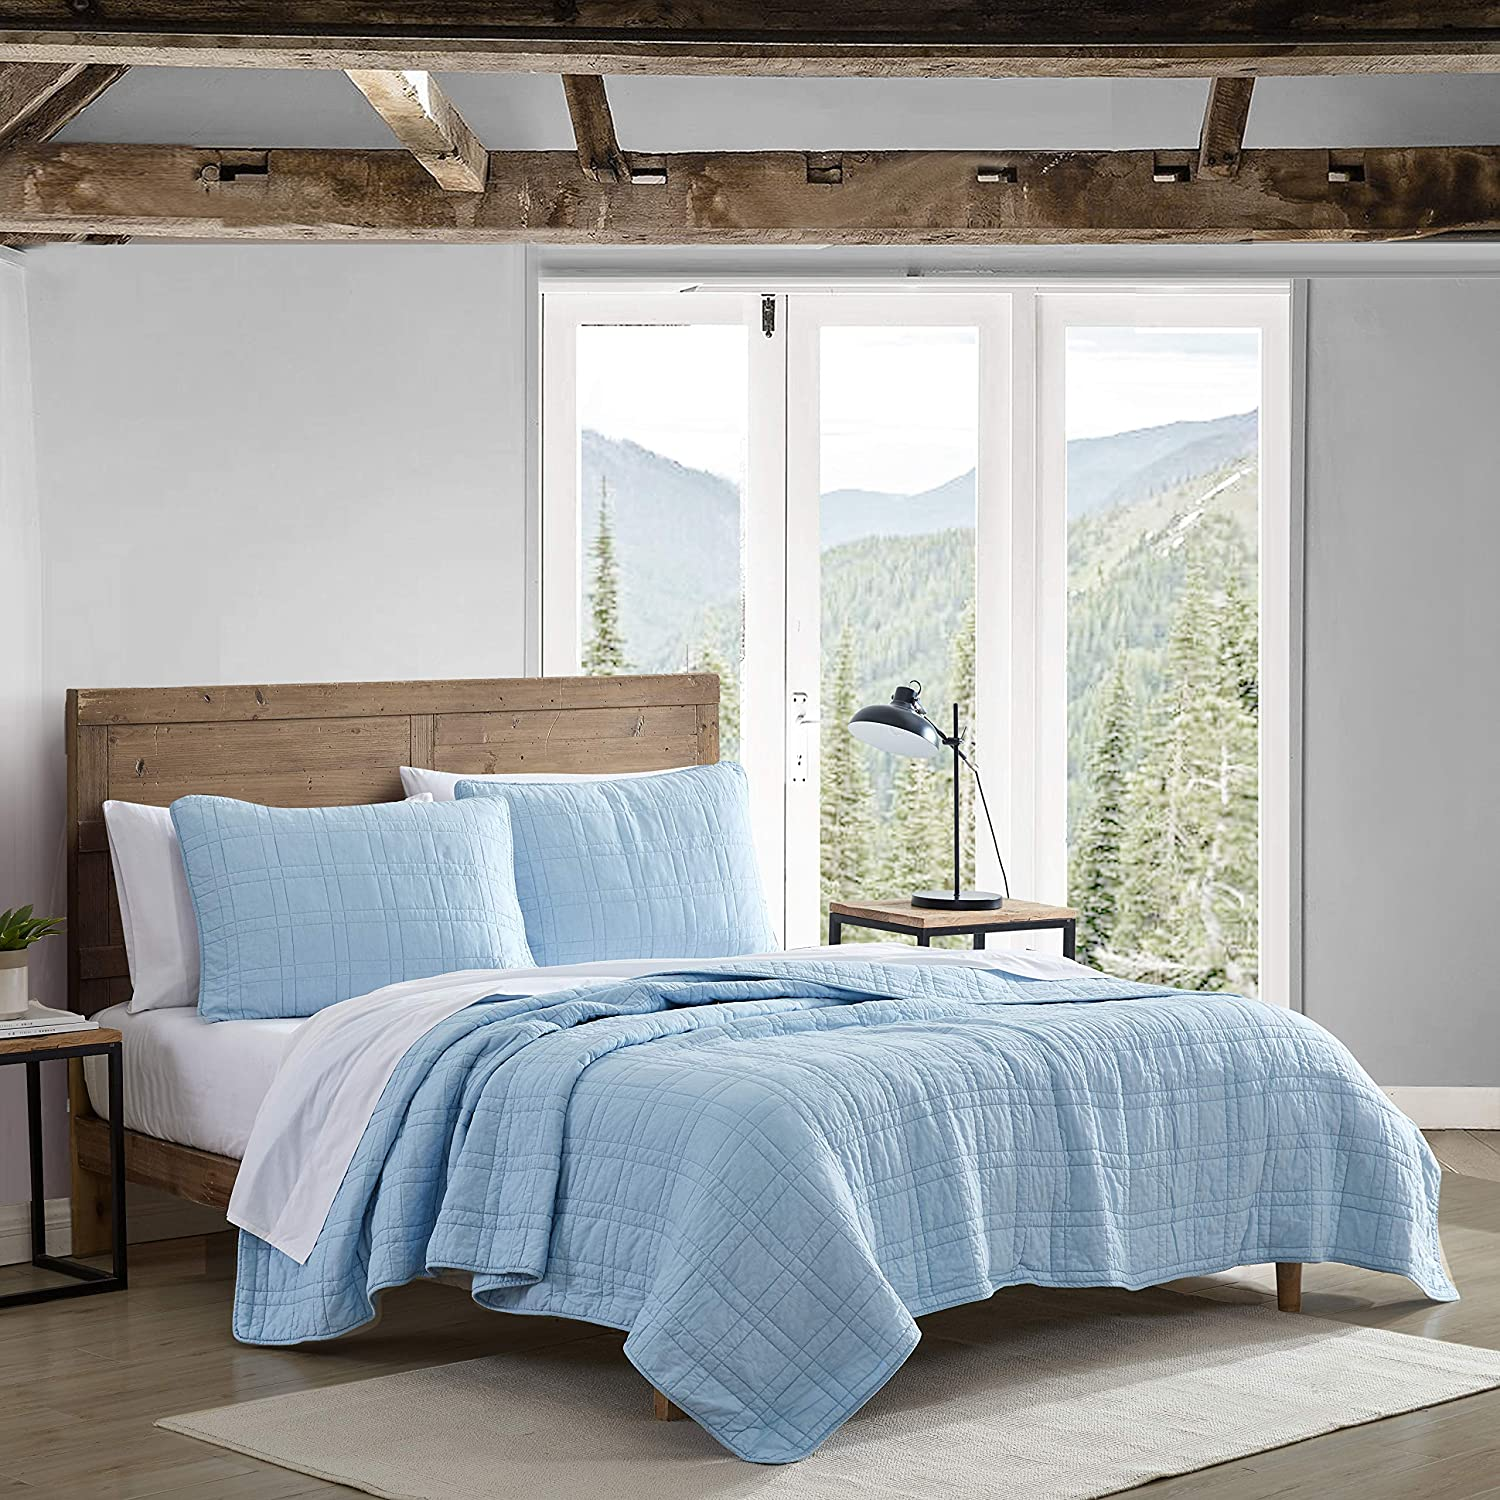 Eddie Bauer Home | Jasper Trail Collection | Quilt Set - 100% Cotton, Reversible, All Season Bedding with Matching Shams, Pre-Washed for Added Comfort, King, Blue